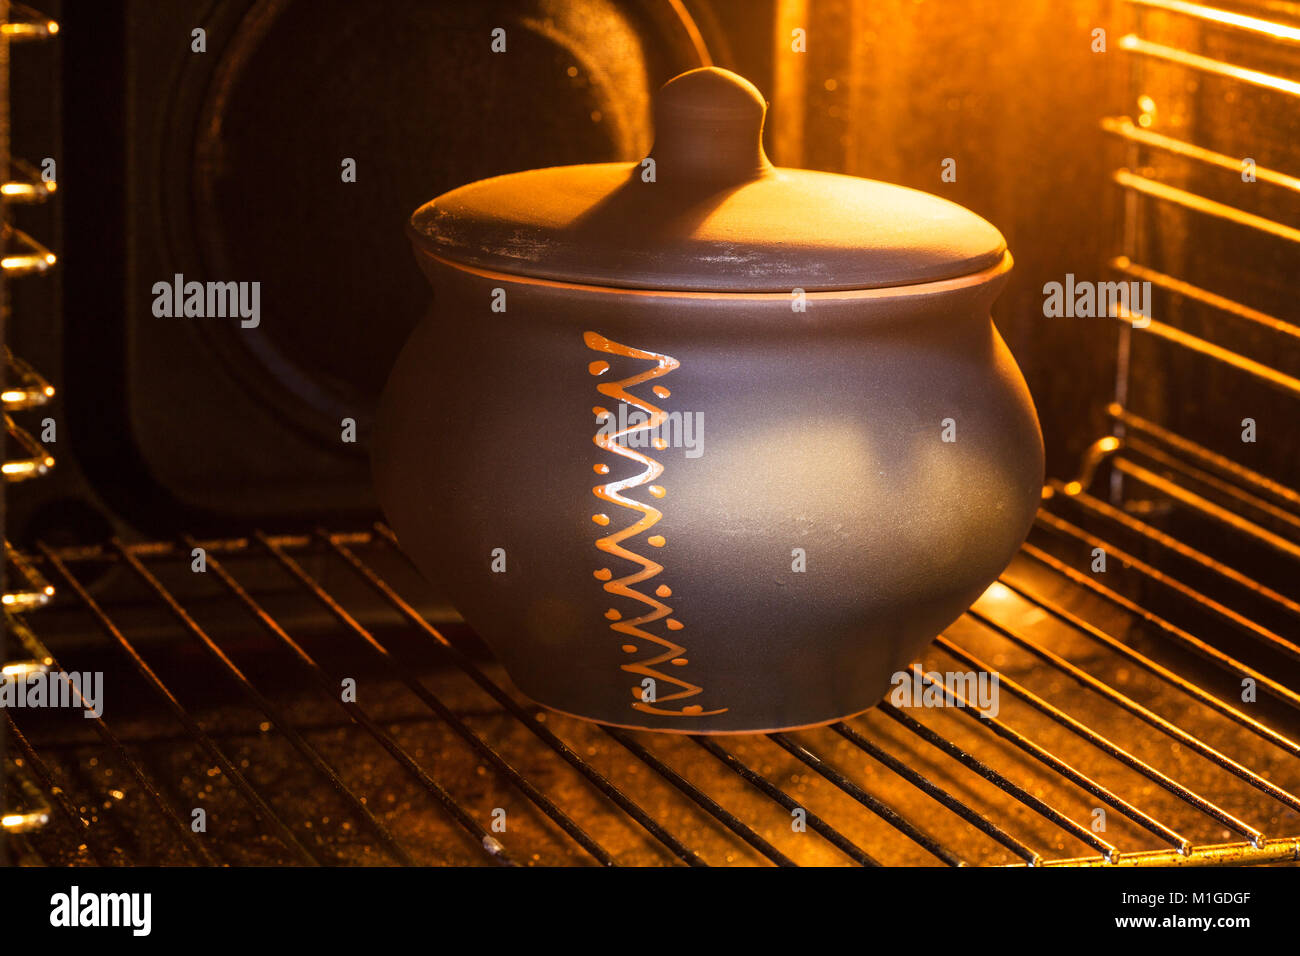 cooking soup - closed ceramic pot with stewed cabbage in illuminated electric oven - Stock Image